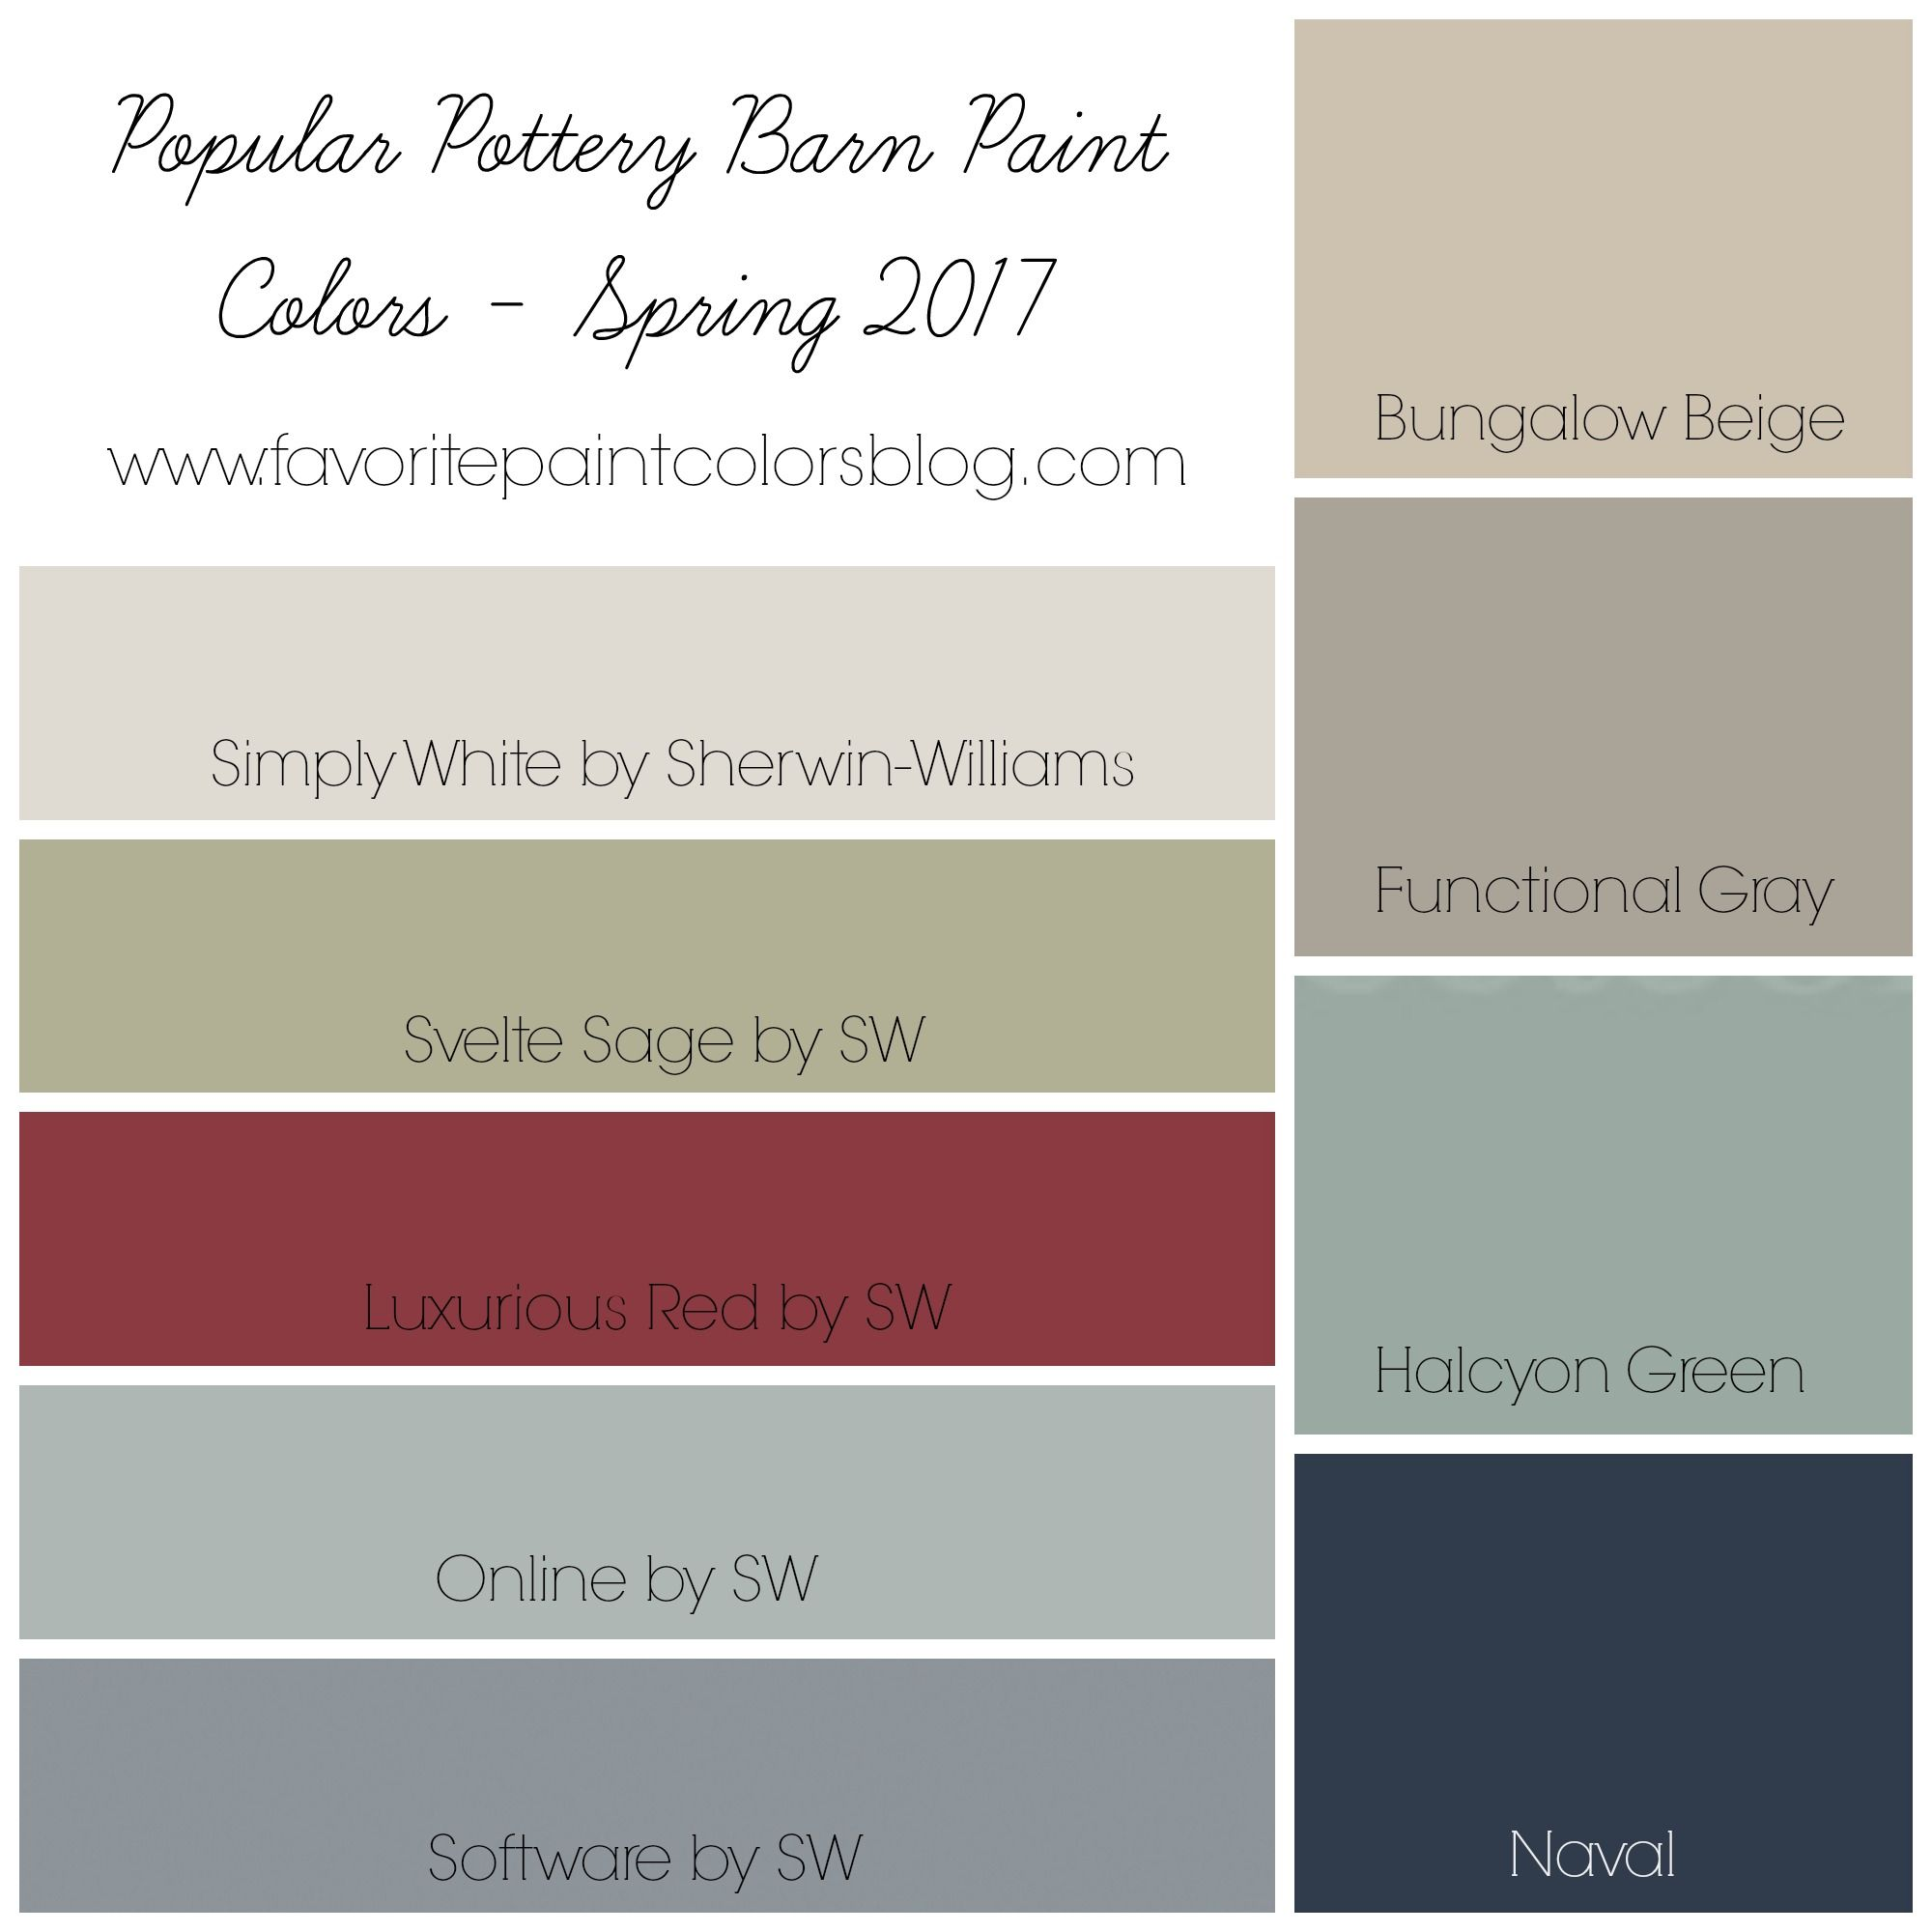 Popular Pottery Barn Paint Colors Pottery Barn Paint Colors Pottery Barn Paint Pottery Barn Colors